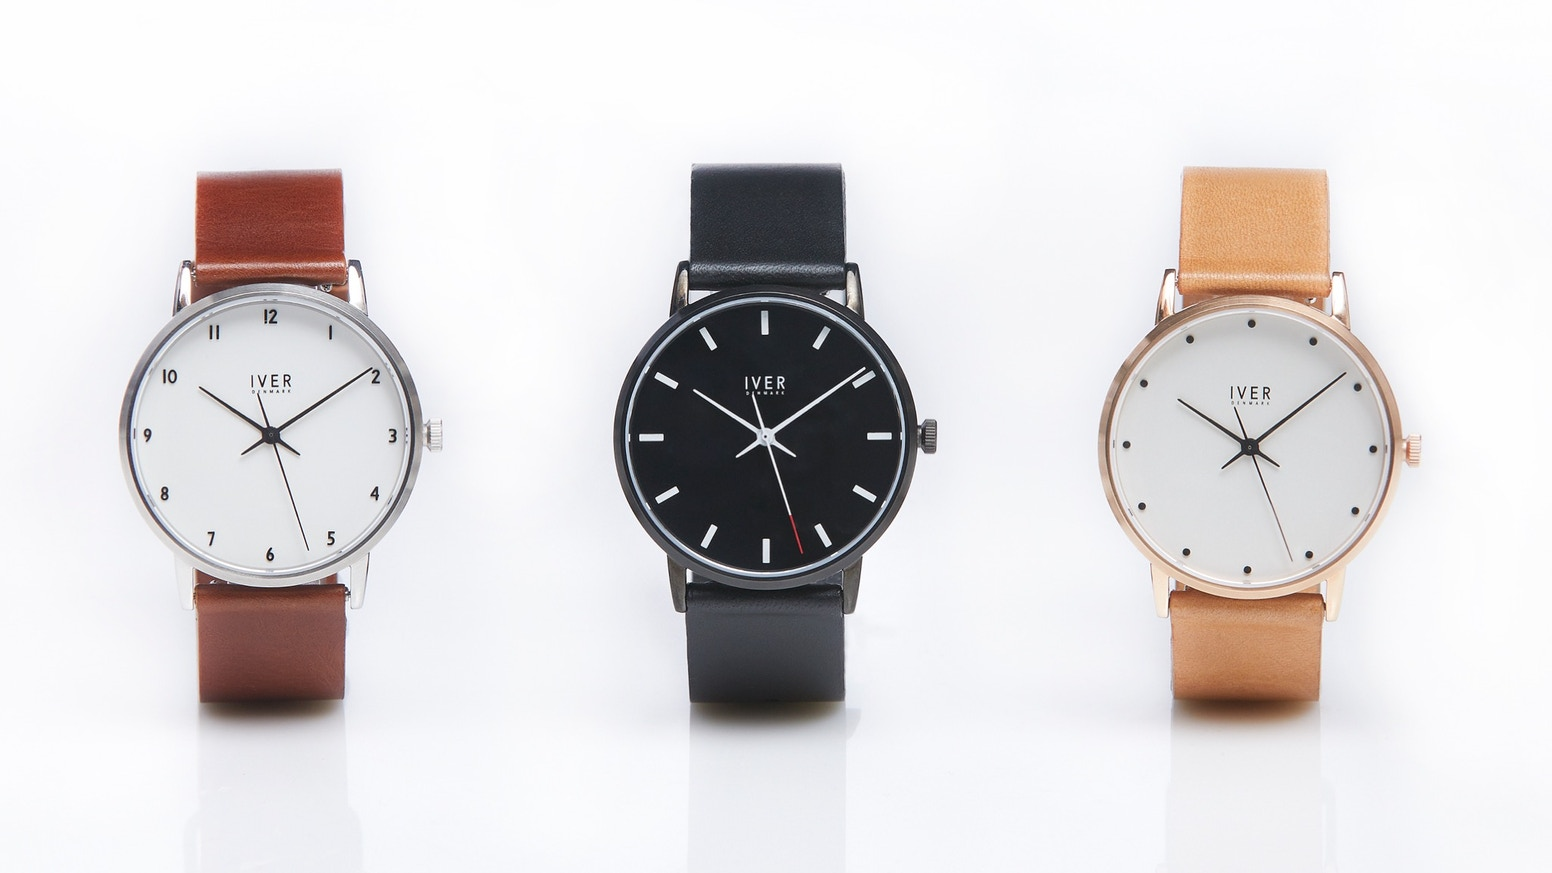 Danish Design. Swiss Quality.   Minimalist watches with hand-made vegetable tanned leather straps.